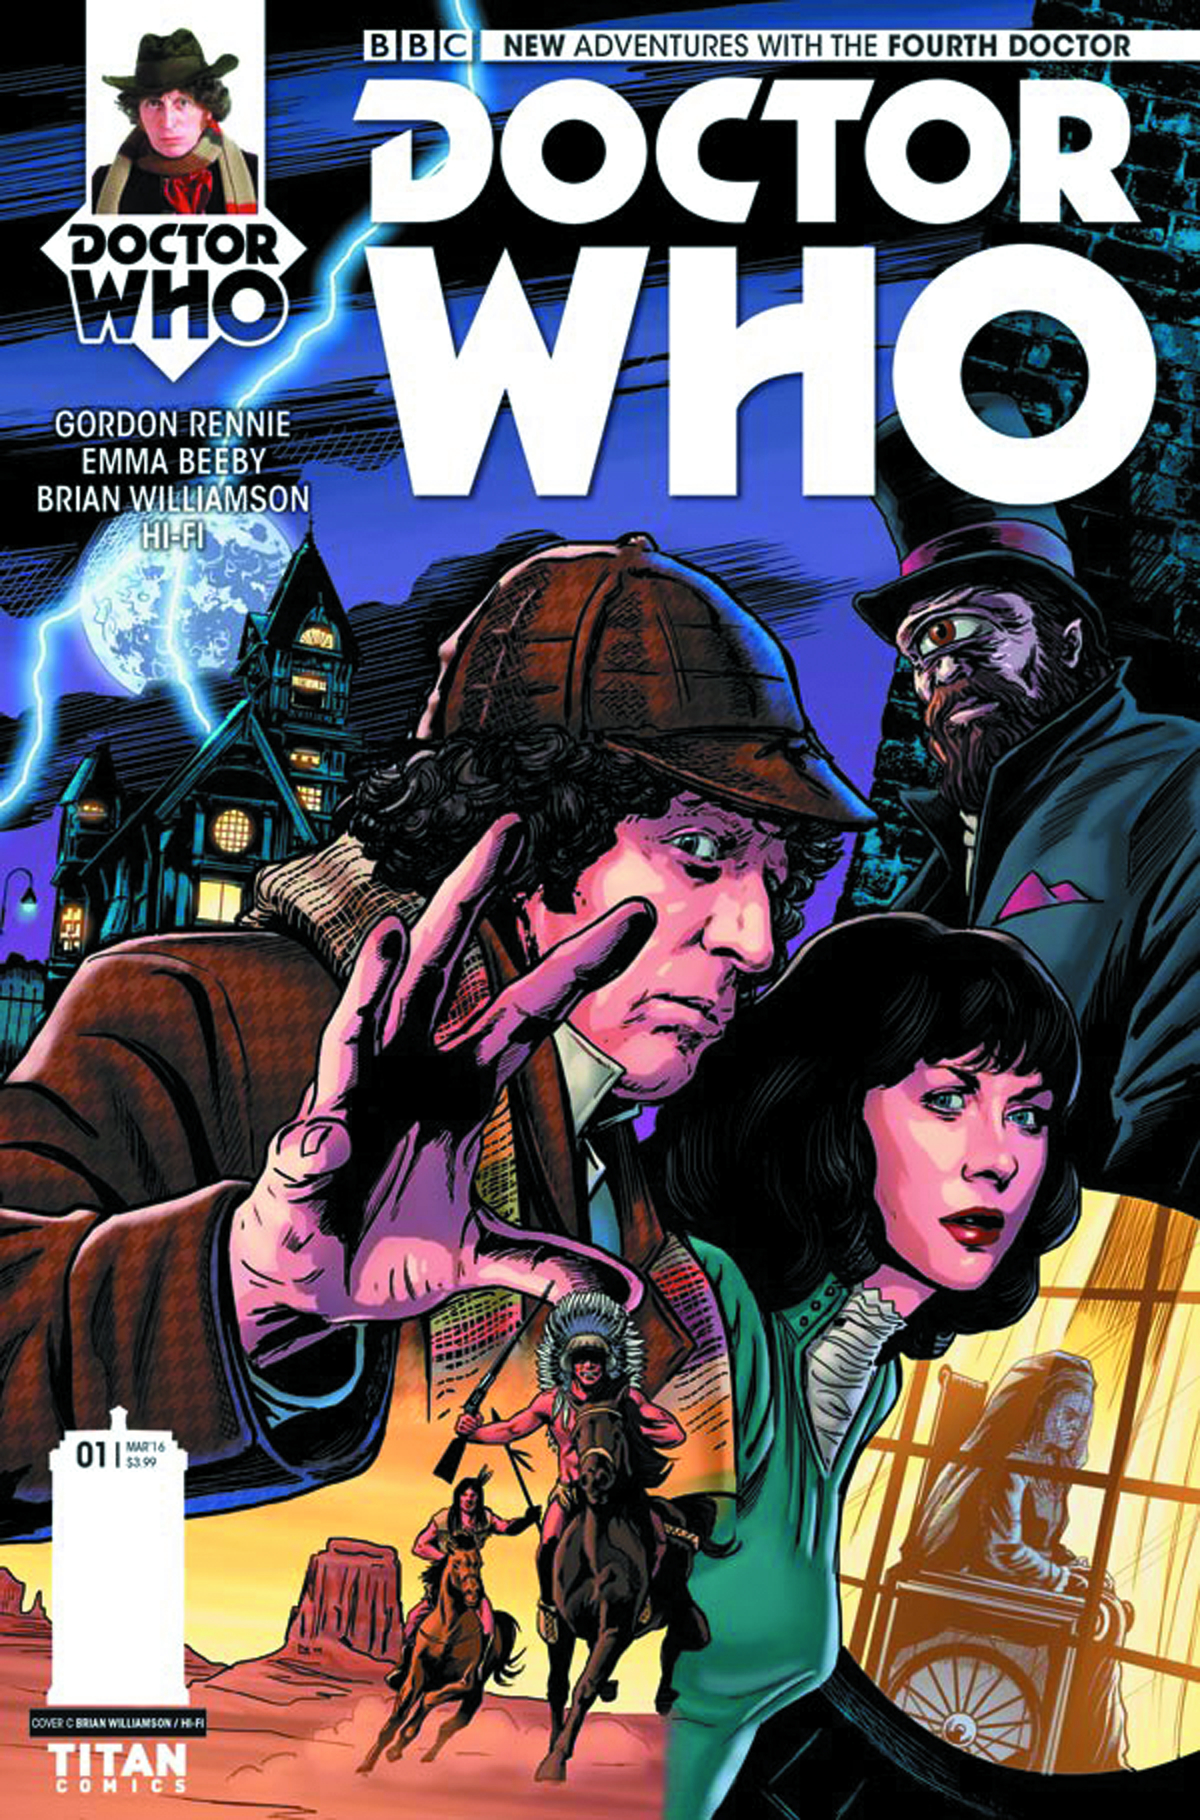 DOCTOR WHO 4TH #1